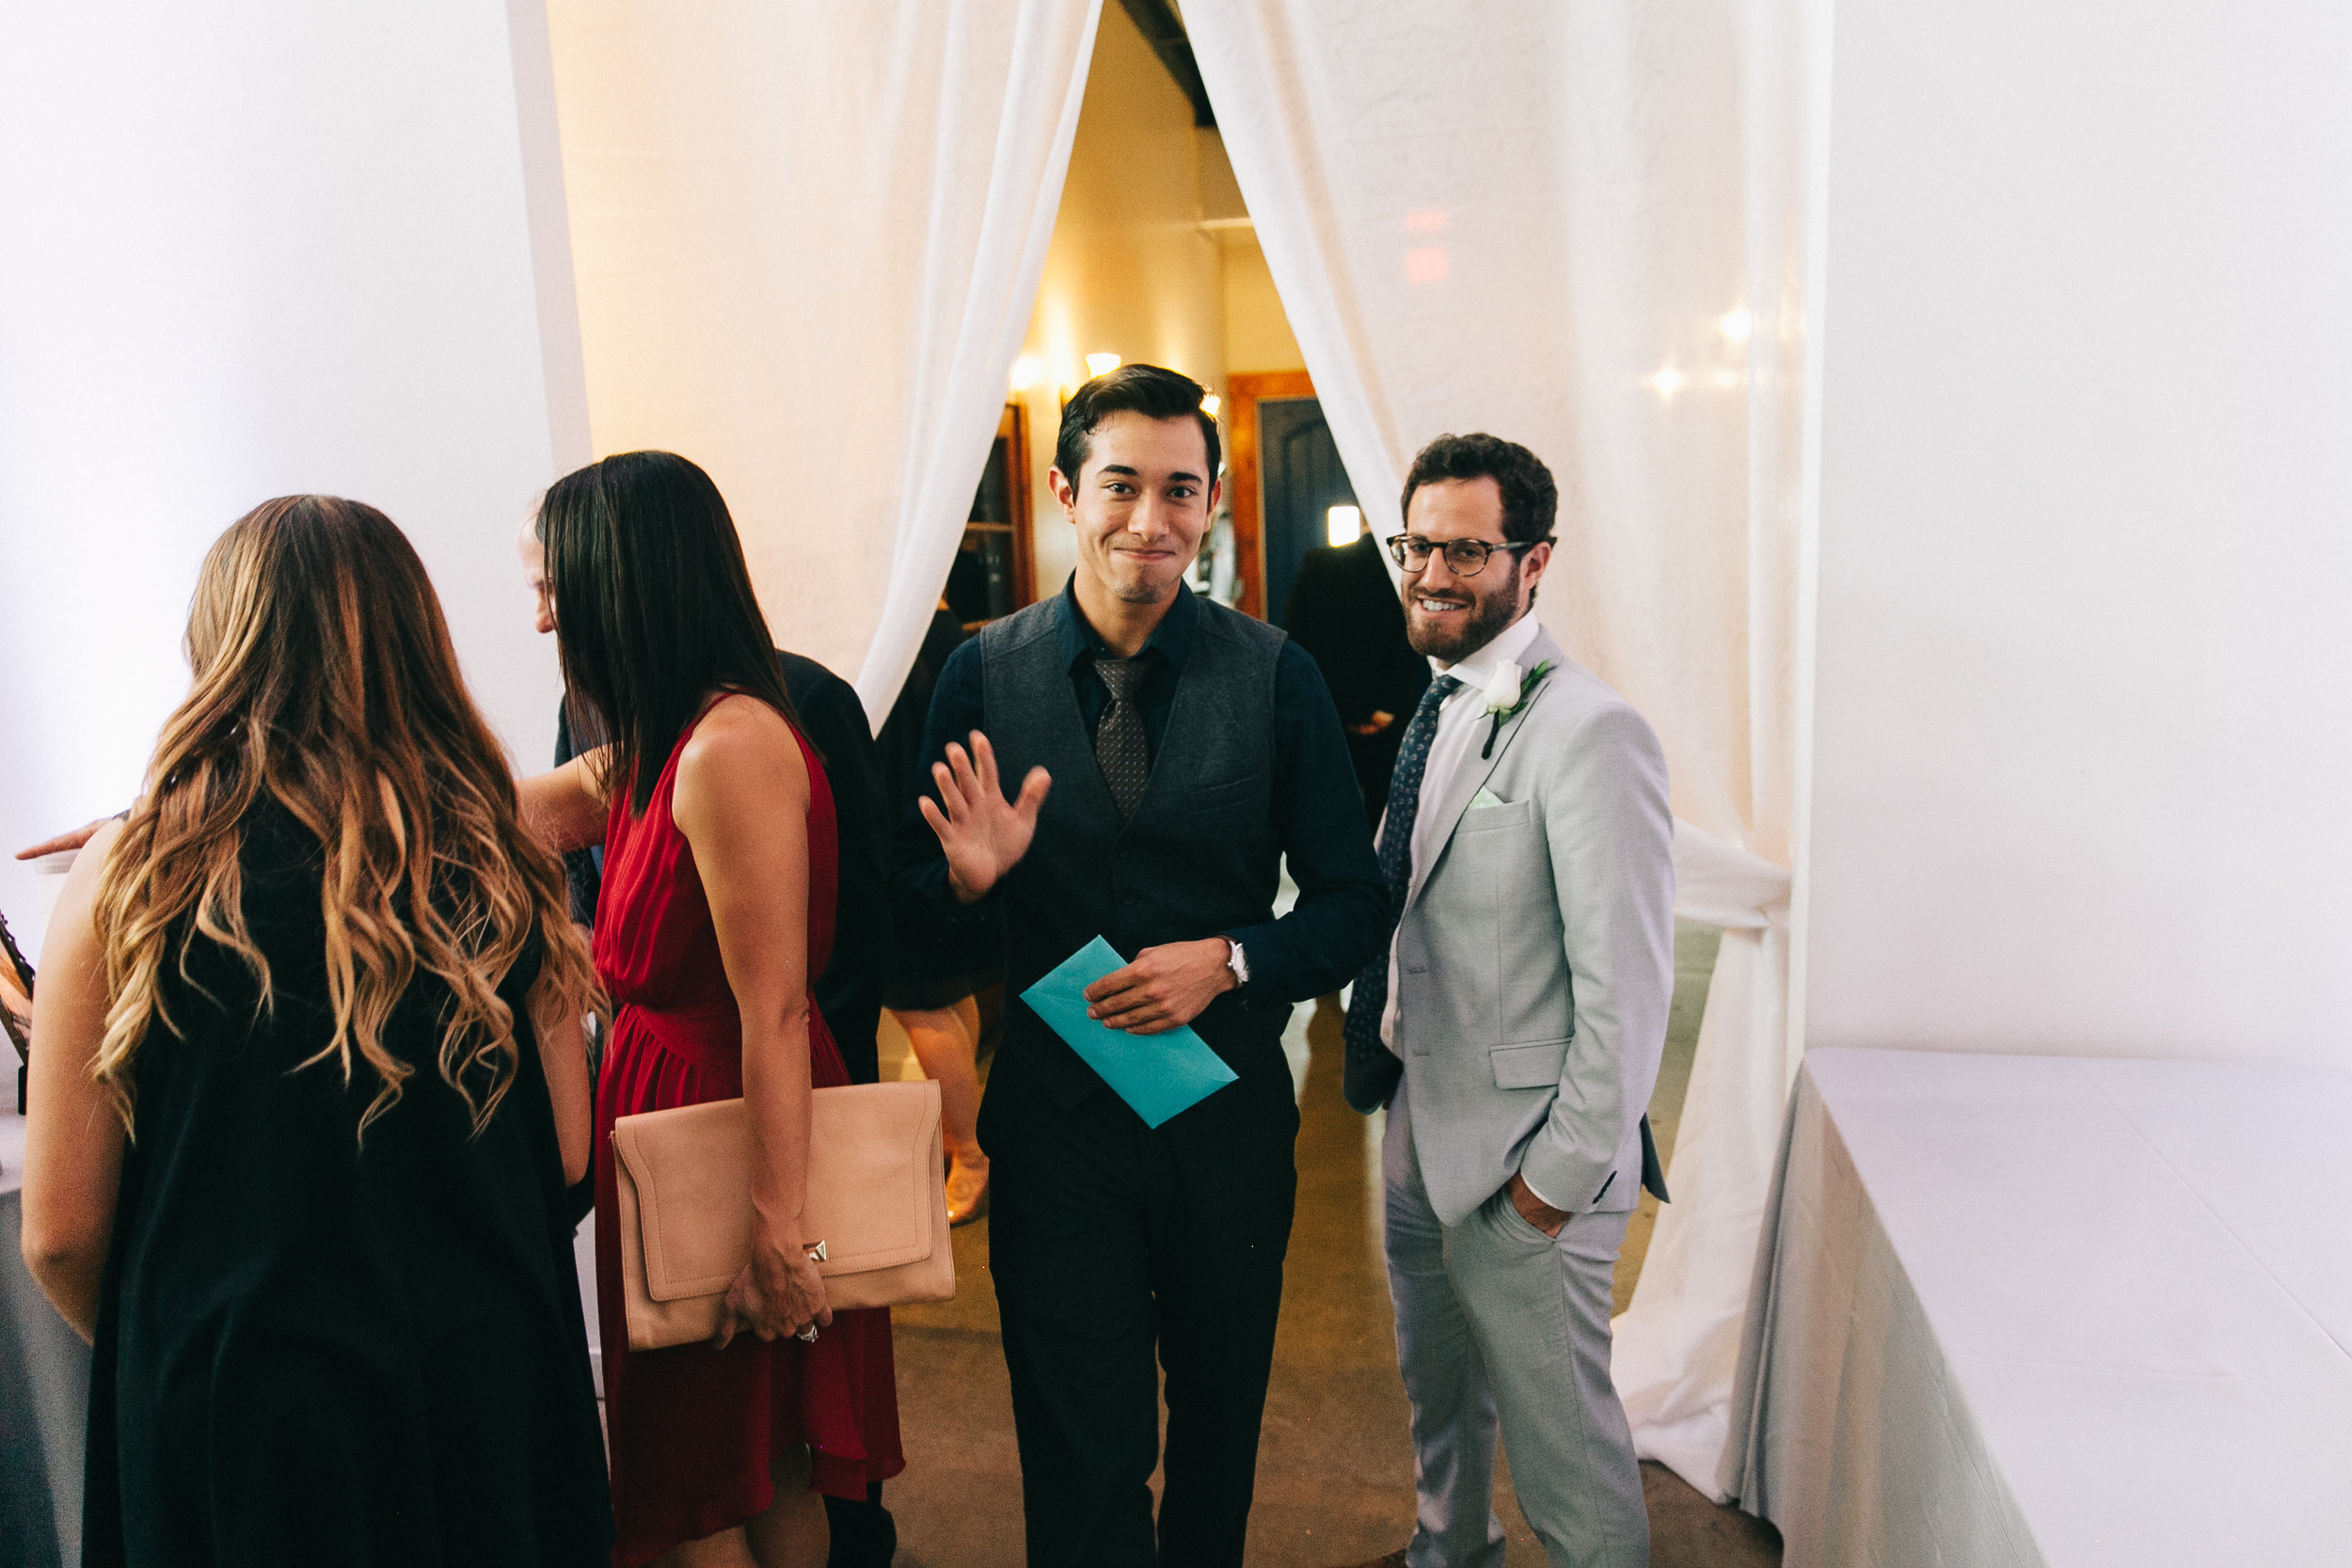 Tampa Industrial wedding at the Rialto Theater_064.jpg